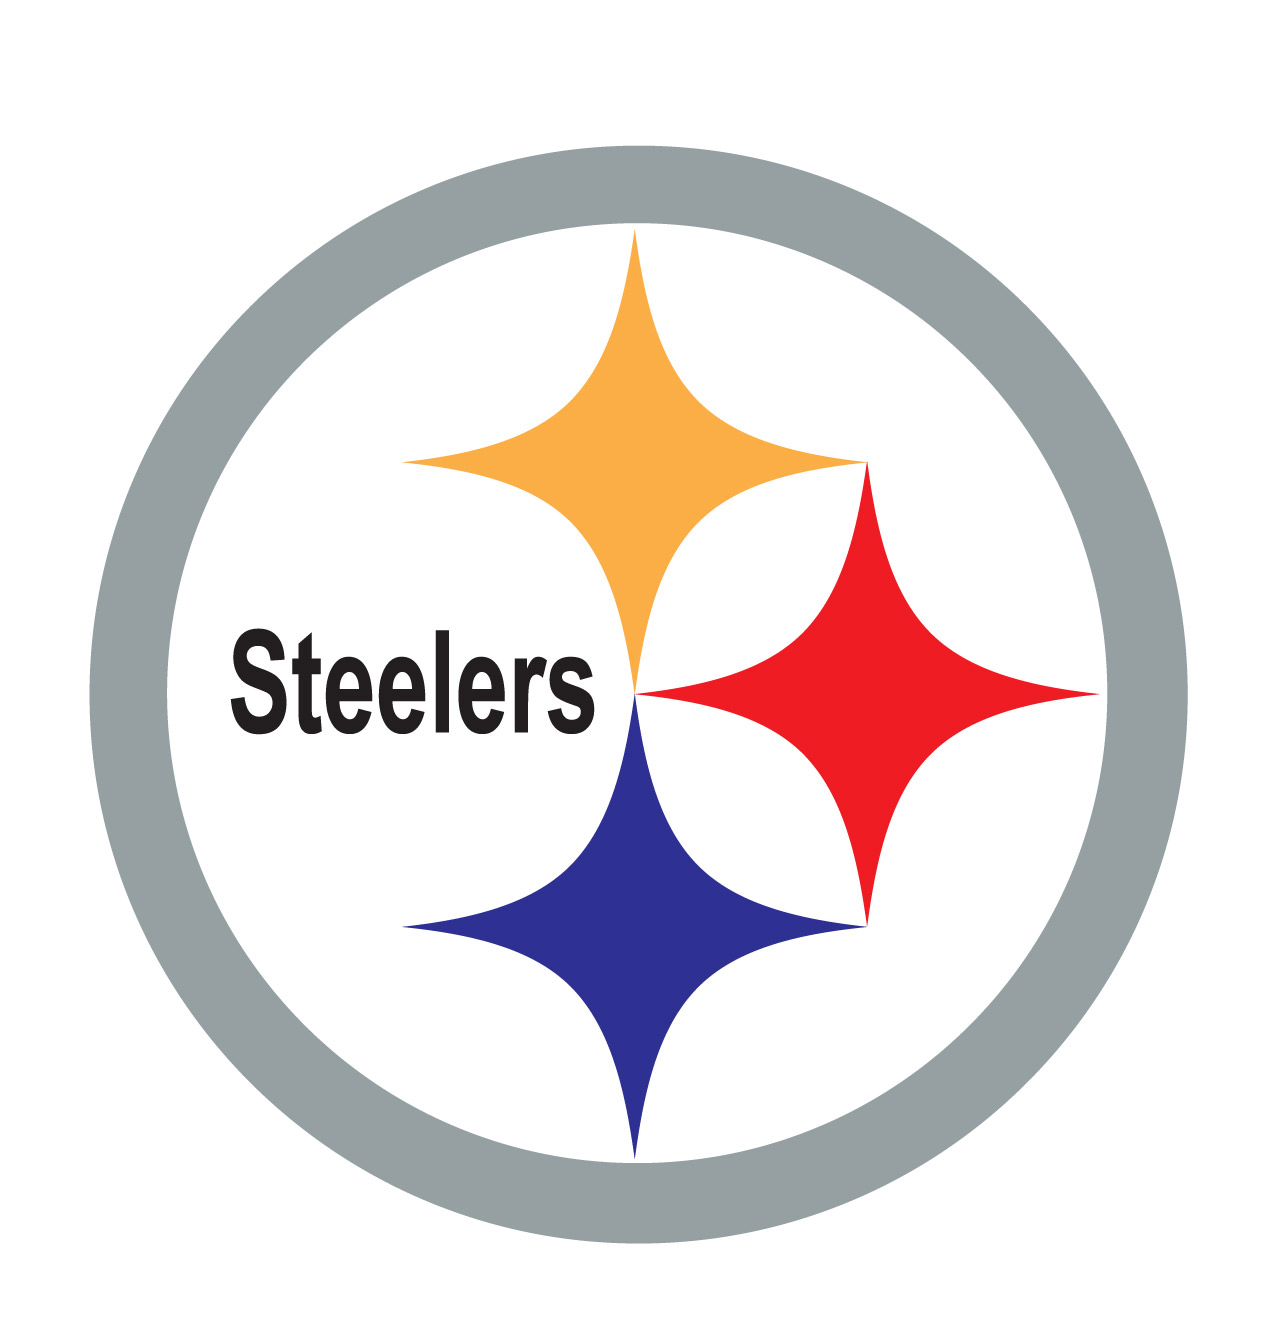 The Steelers Logo Is Based On Steelmark Belonging To